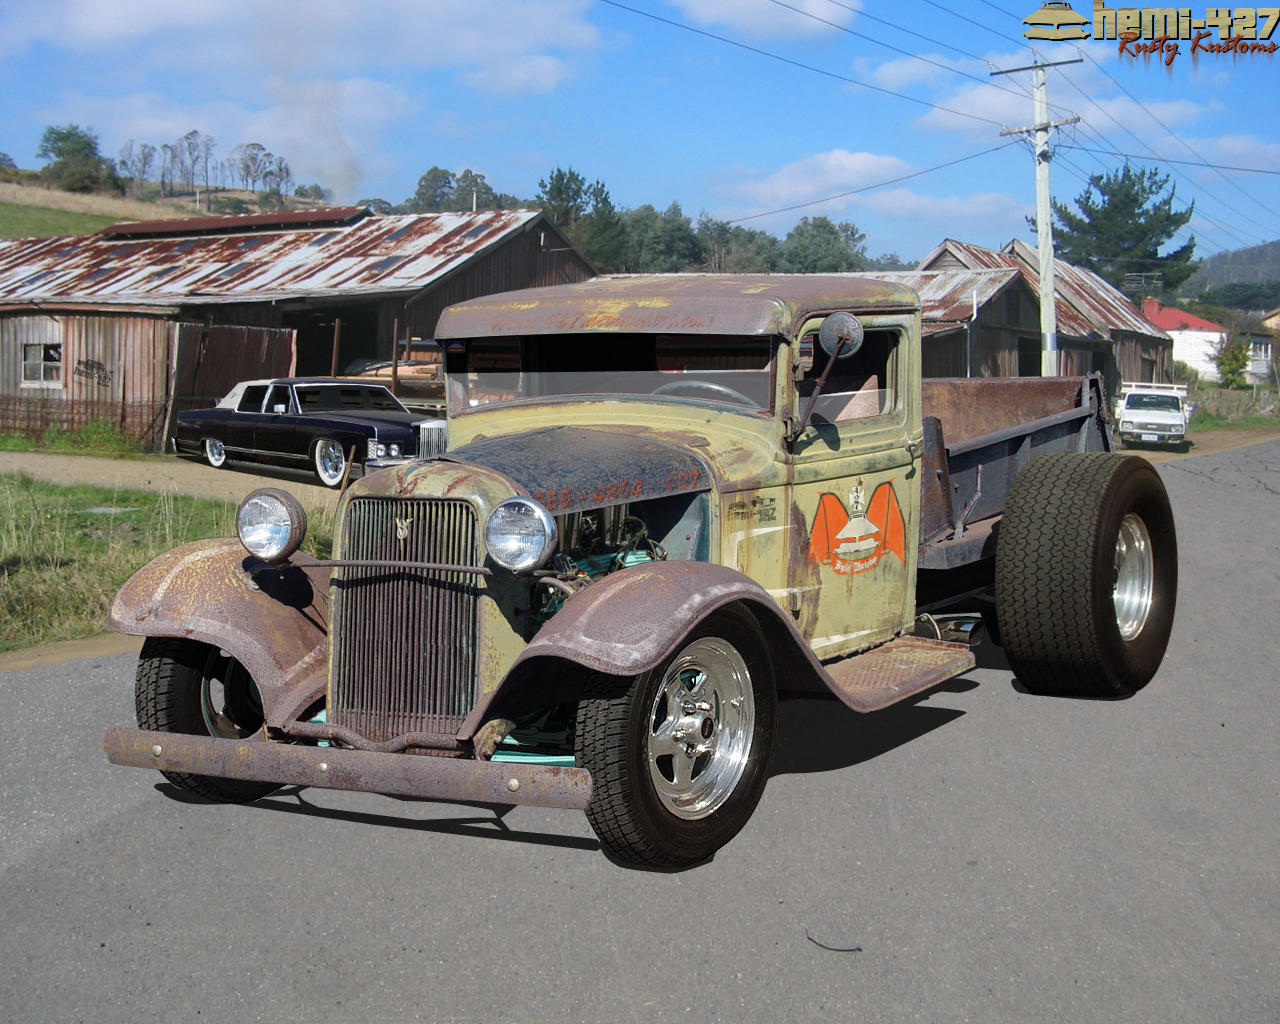 34 Ford Truck by ~Hemi-427 on